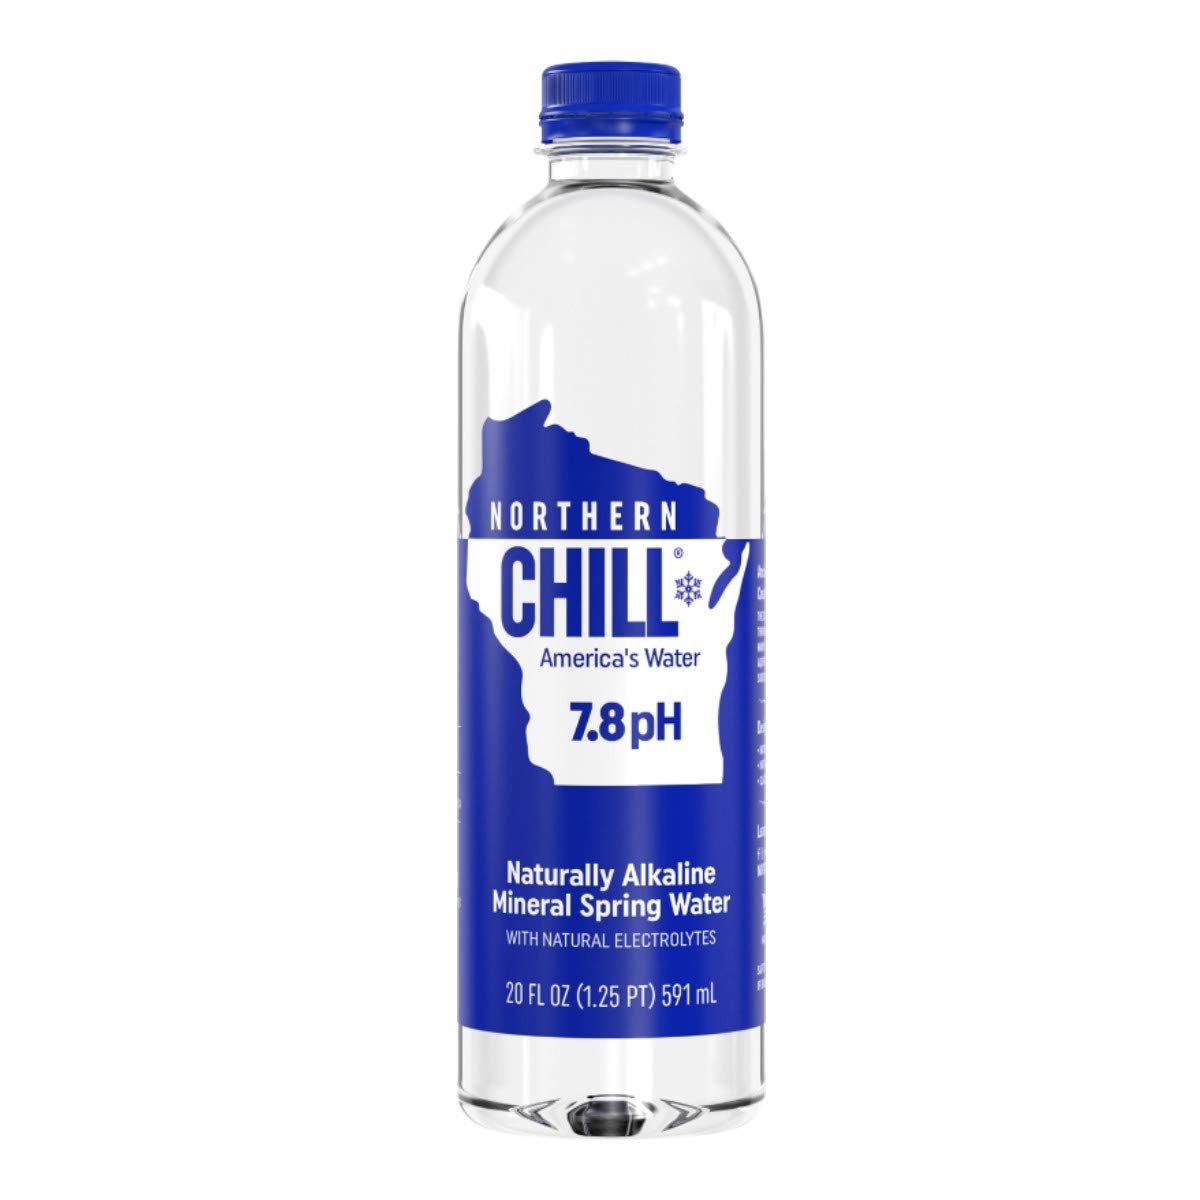 Northern Chill, 20oz, 24 pack, Naturally Alkaline Mineral Spring Water, Naturally Filtered Minerals & Electrolytes, BPA Free PET Bottles, This is America's Water